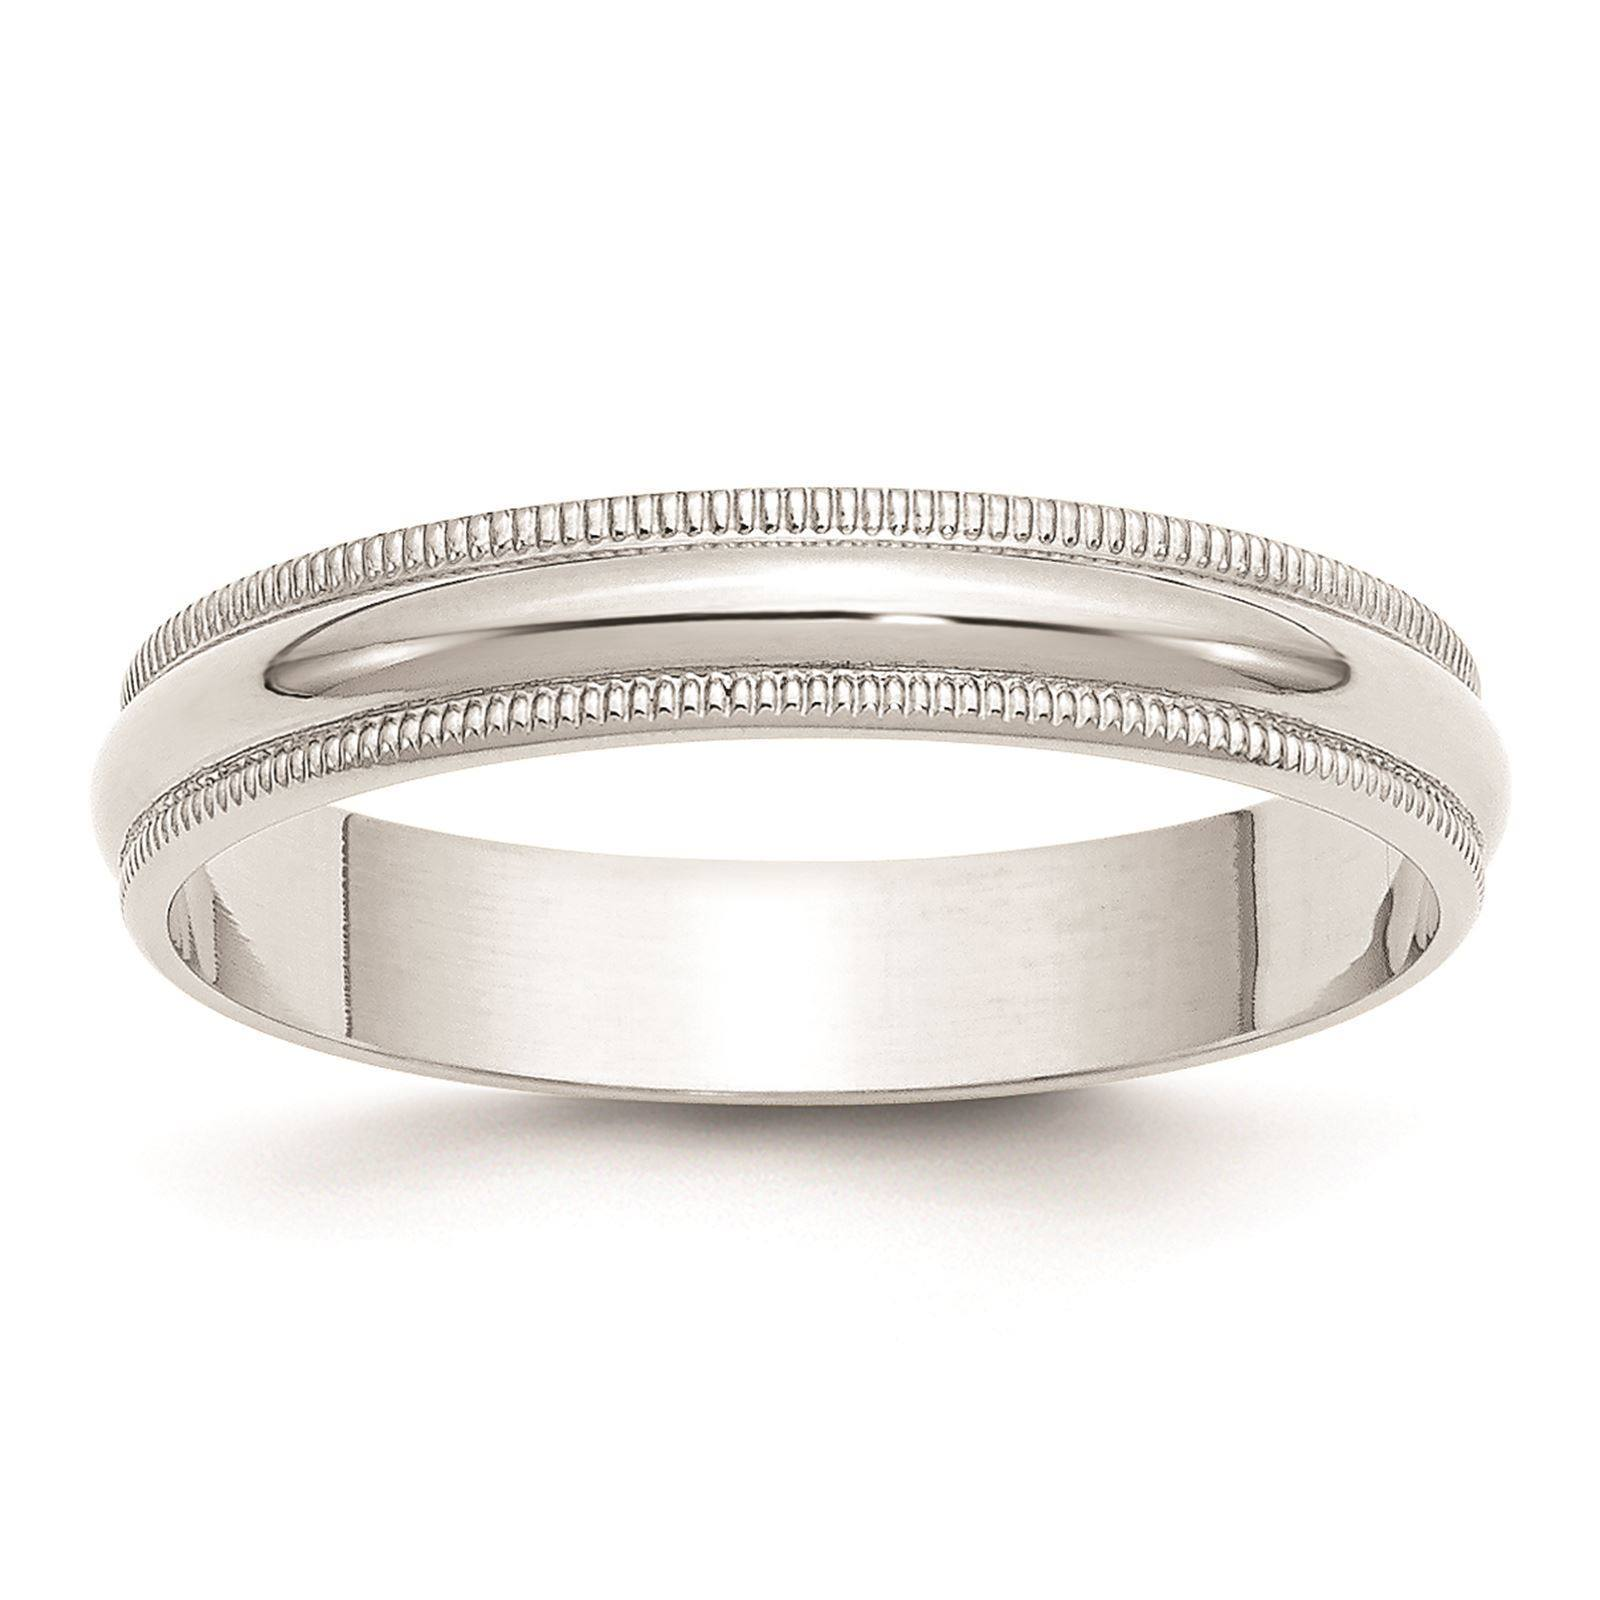 Size 13 Bonyak Jewelry 10k White Gold 3 mm Lightweight Milgrain Band